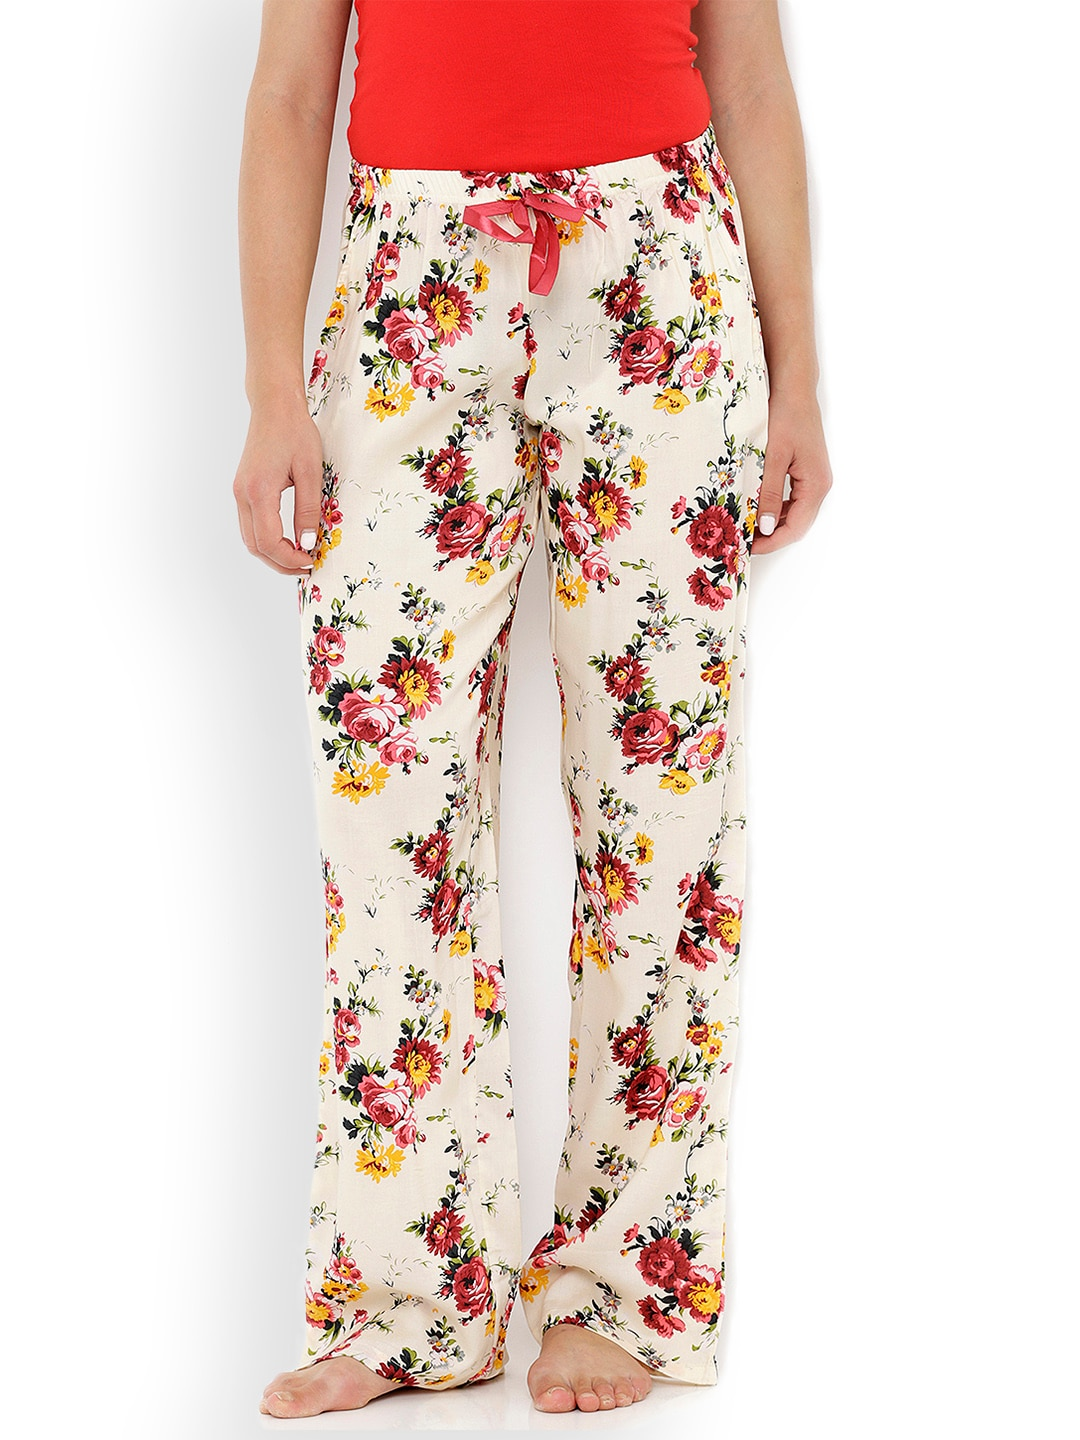 Heart 2 Heart Off-White Printed Lounge Pants LP115ROSEOW image